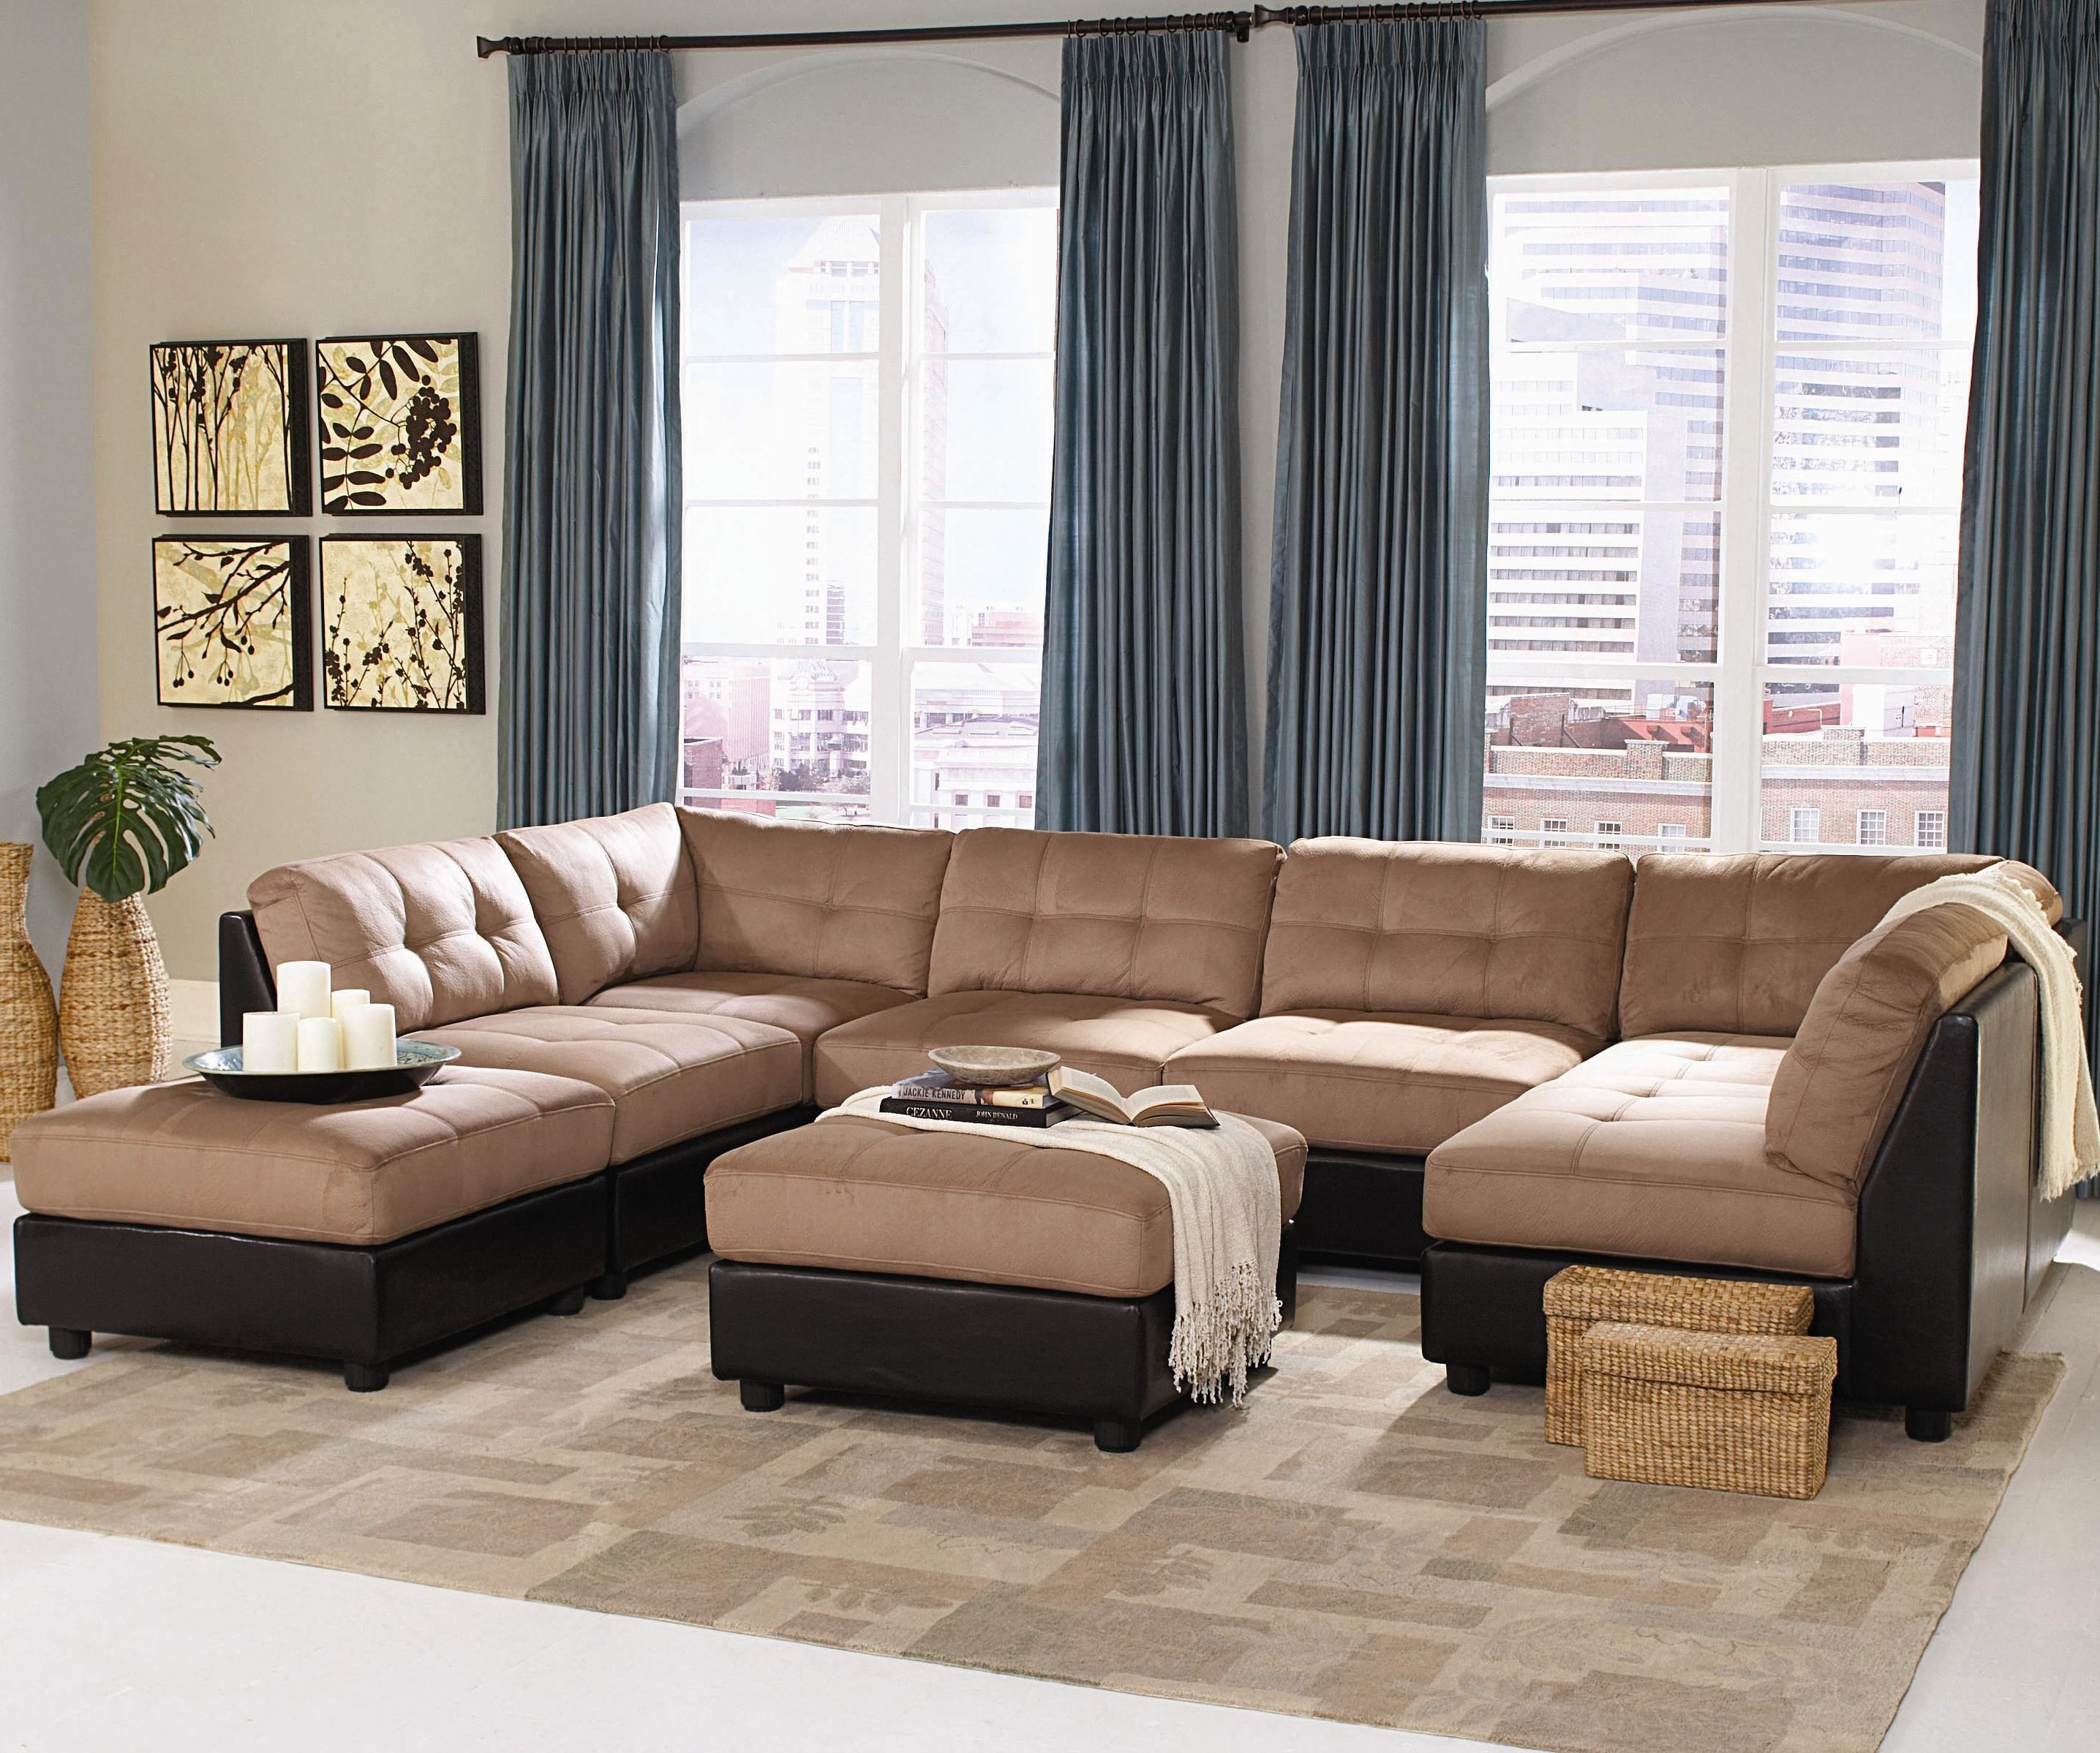 20 top traditional sectional sofas living room furniture sofa ideas for Best sofa for small living room